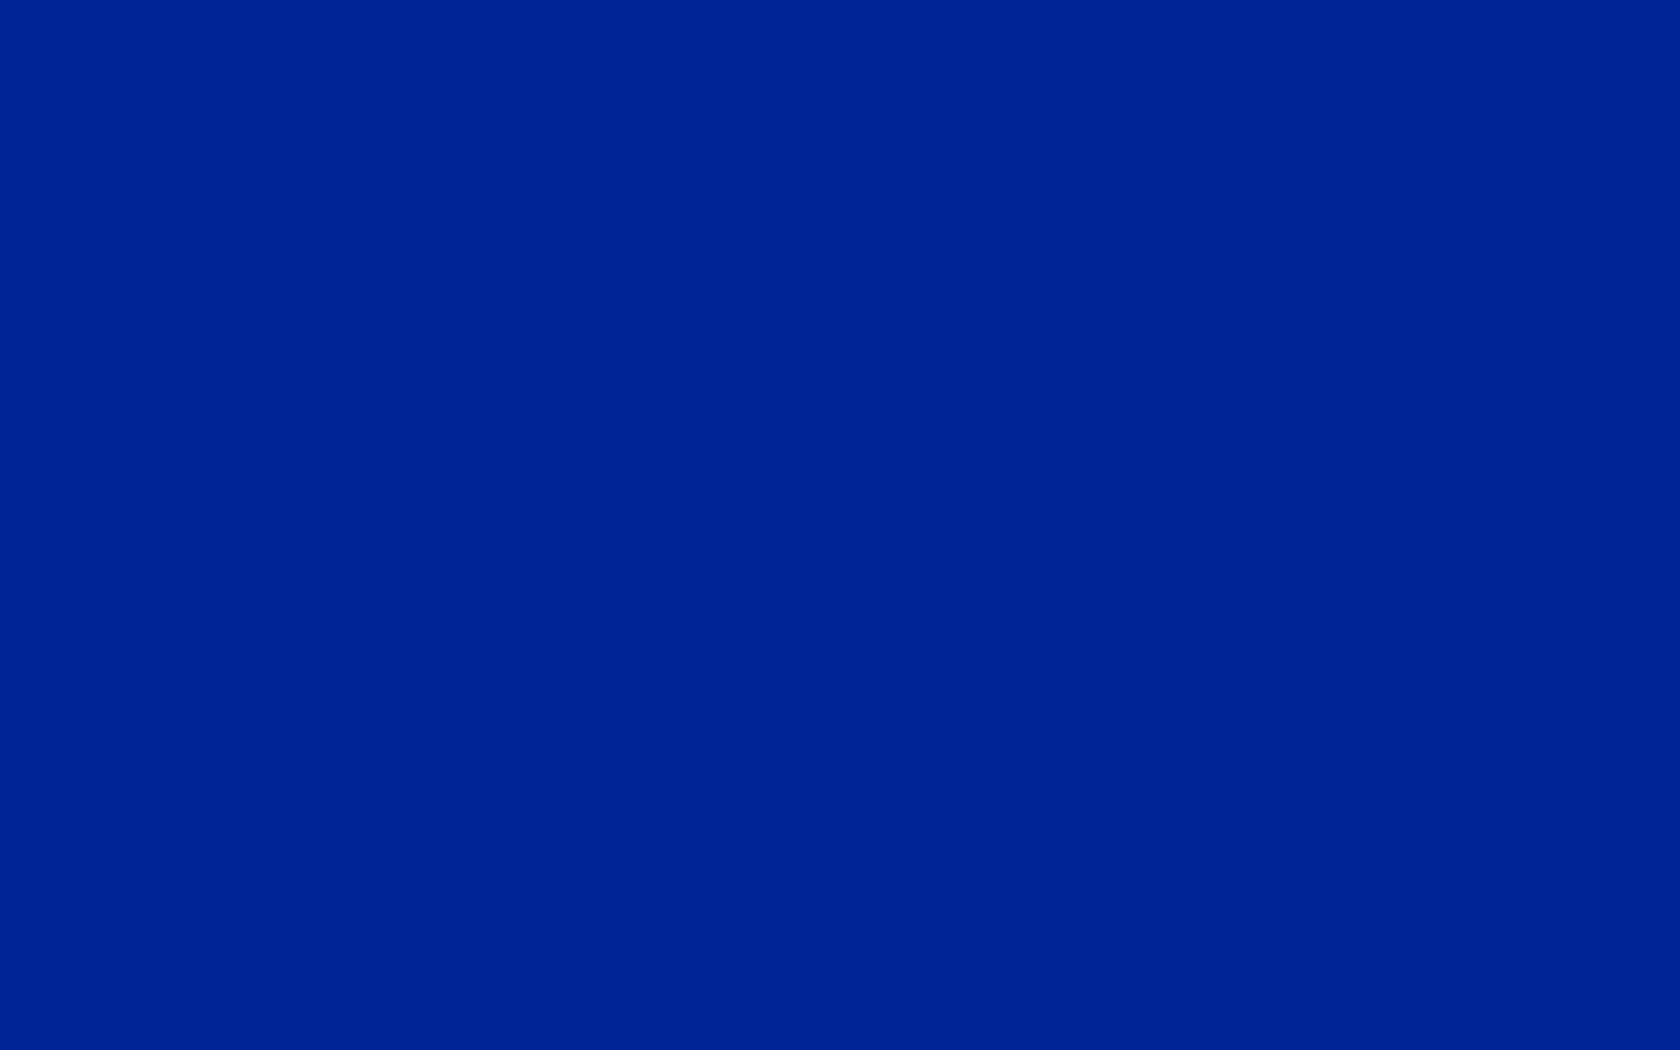 Blue solid color background view and download the below background 1680x1050